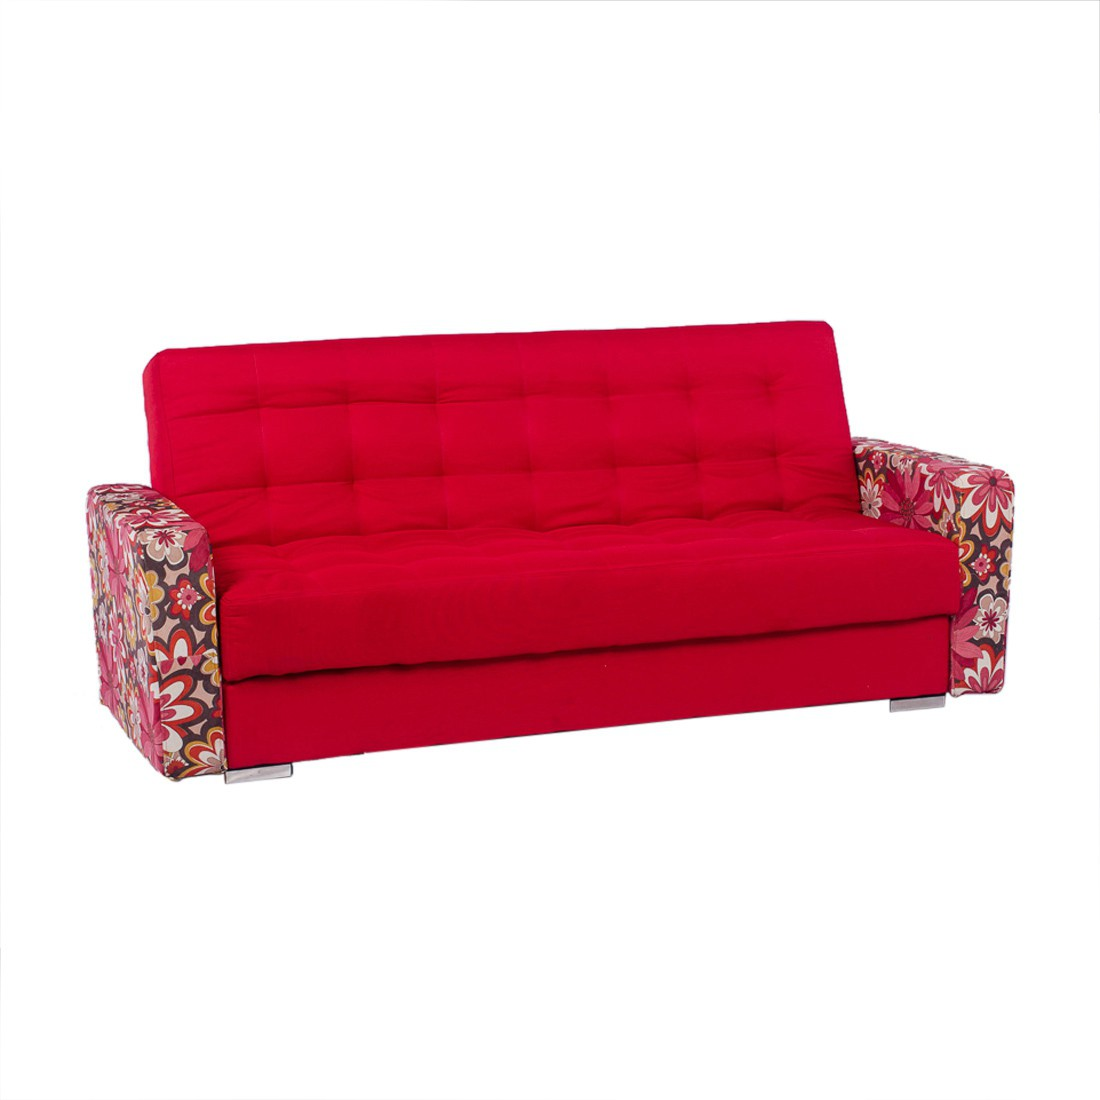 View Irony Furniture NA Double Foam Sofa Bed(Finish Color - Red Mechanism Type - Fold Out) Furniture (Irony Furniture)